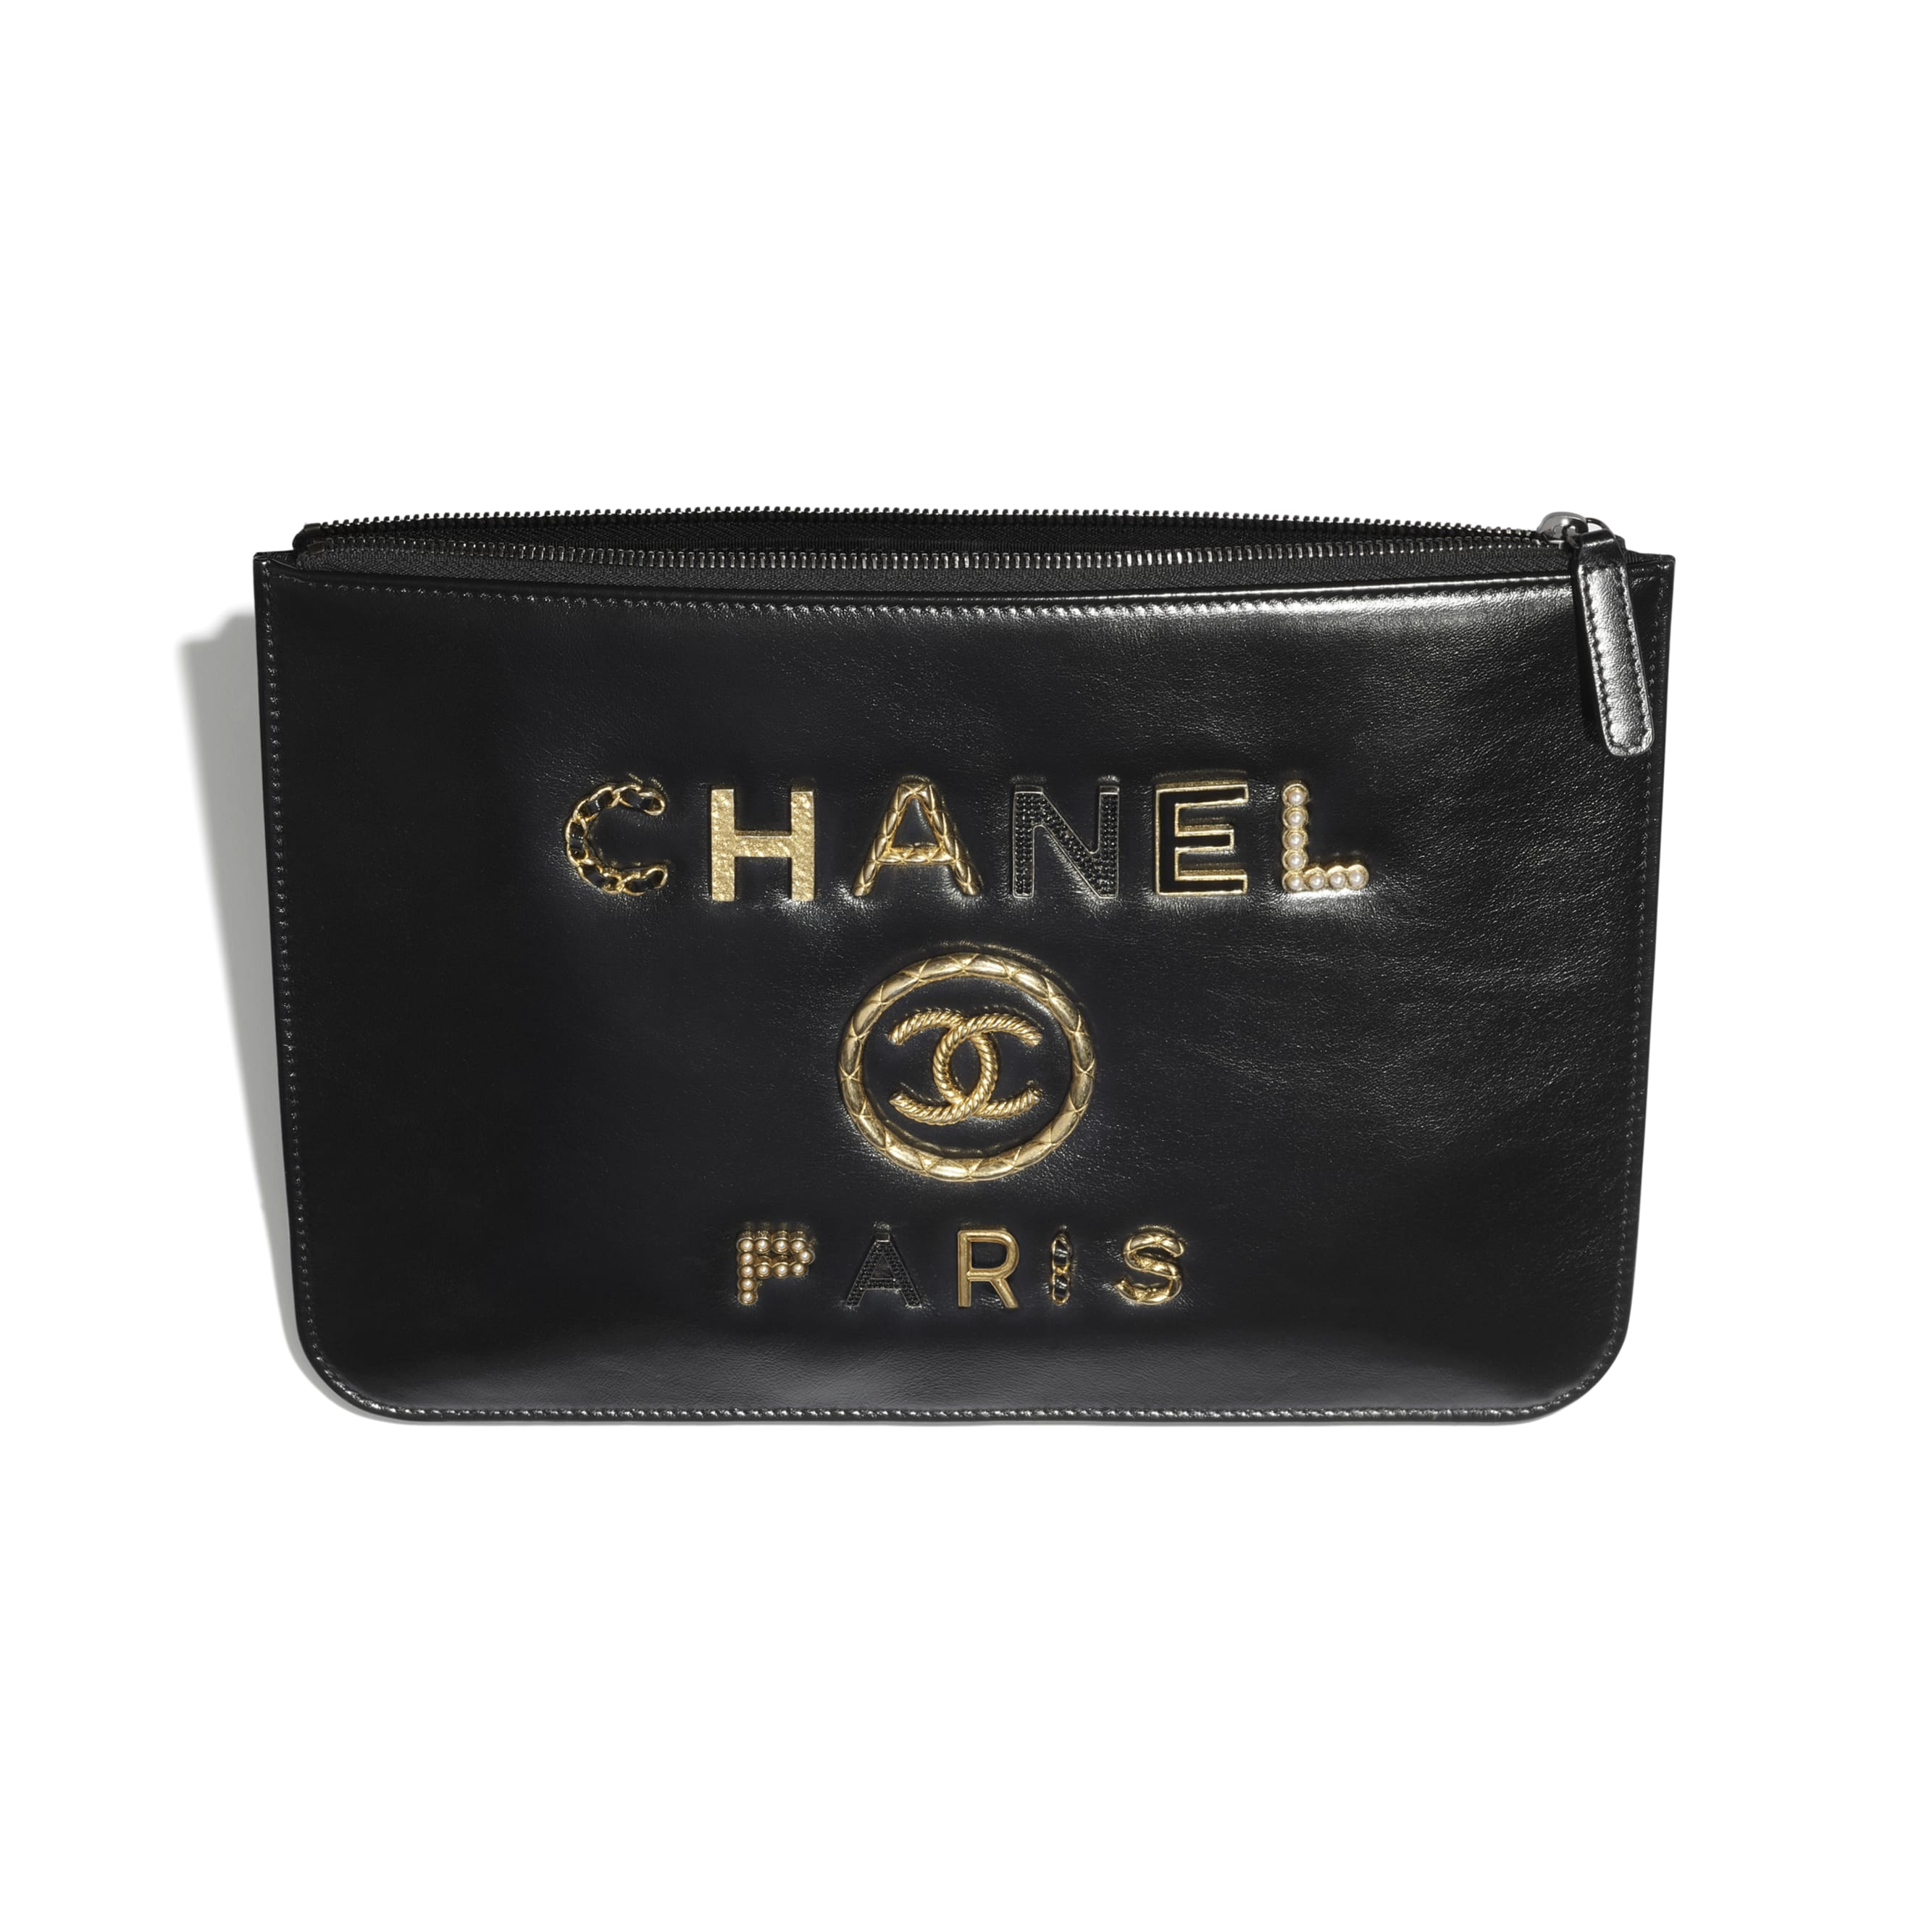 Pouch - Black - Shiny Calfskin, Crystal Pearls, Diamante, Enamel, Gold-Tone & Ruthenium-Finish Metal - CHANEL - Other view - see standard sized version